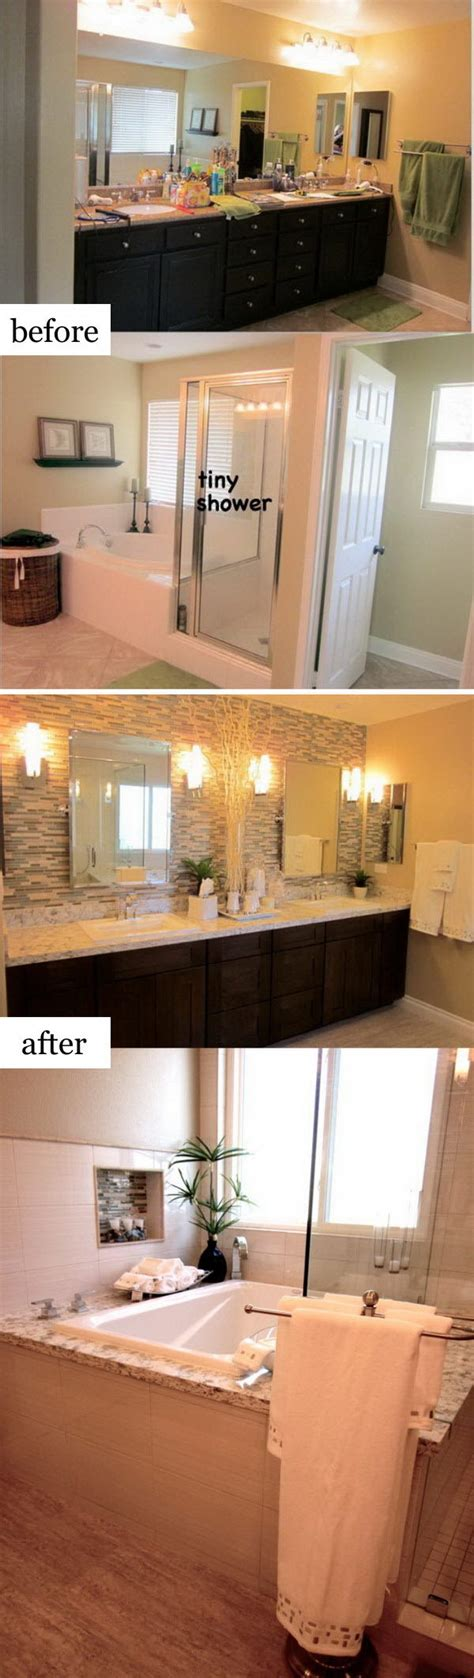 bathroom remodeling ideas before and after before and after makeovers 30 awesome bathroom